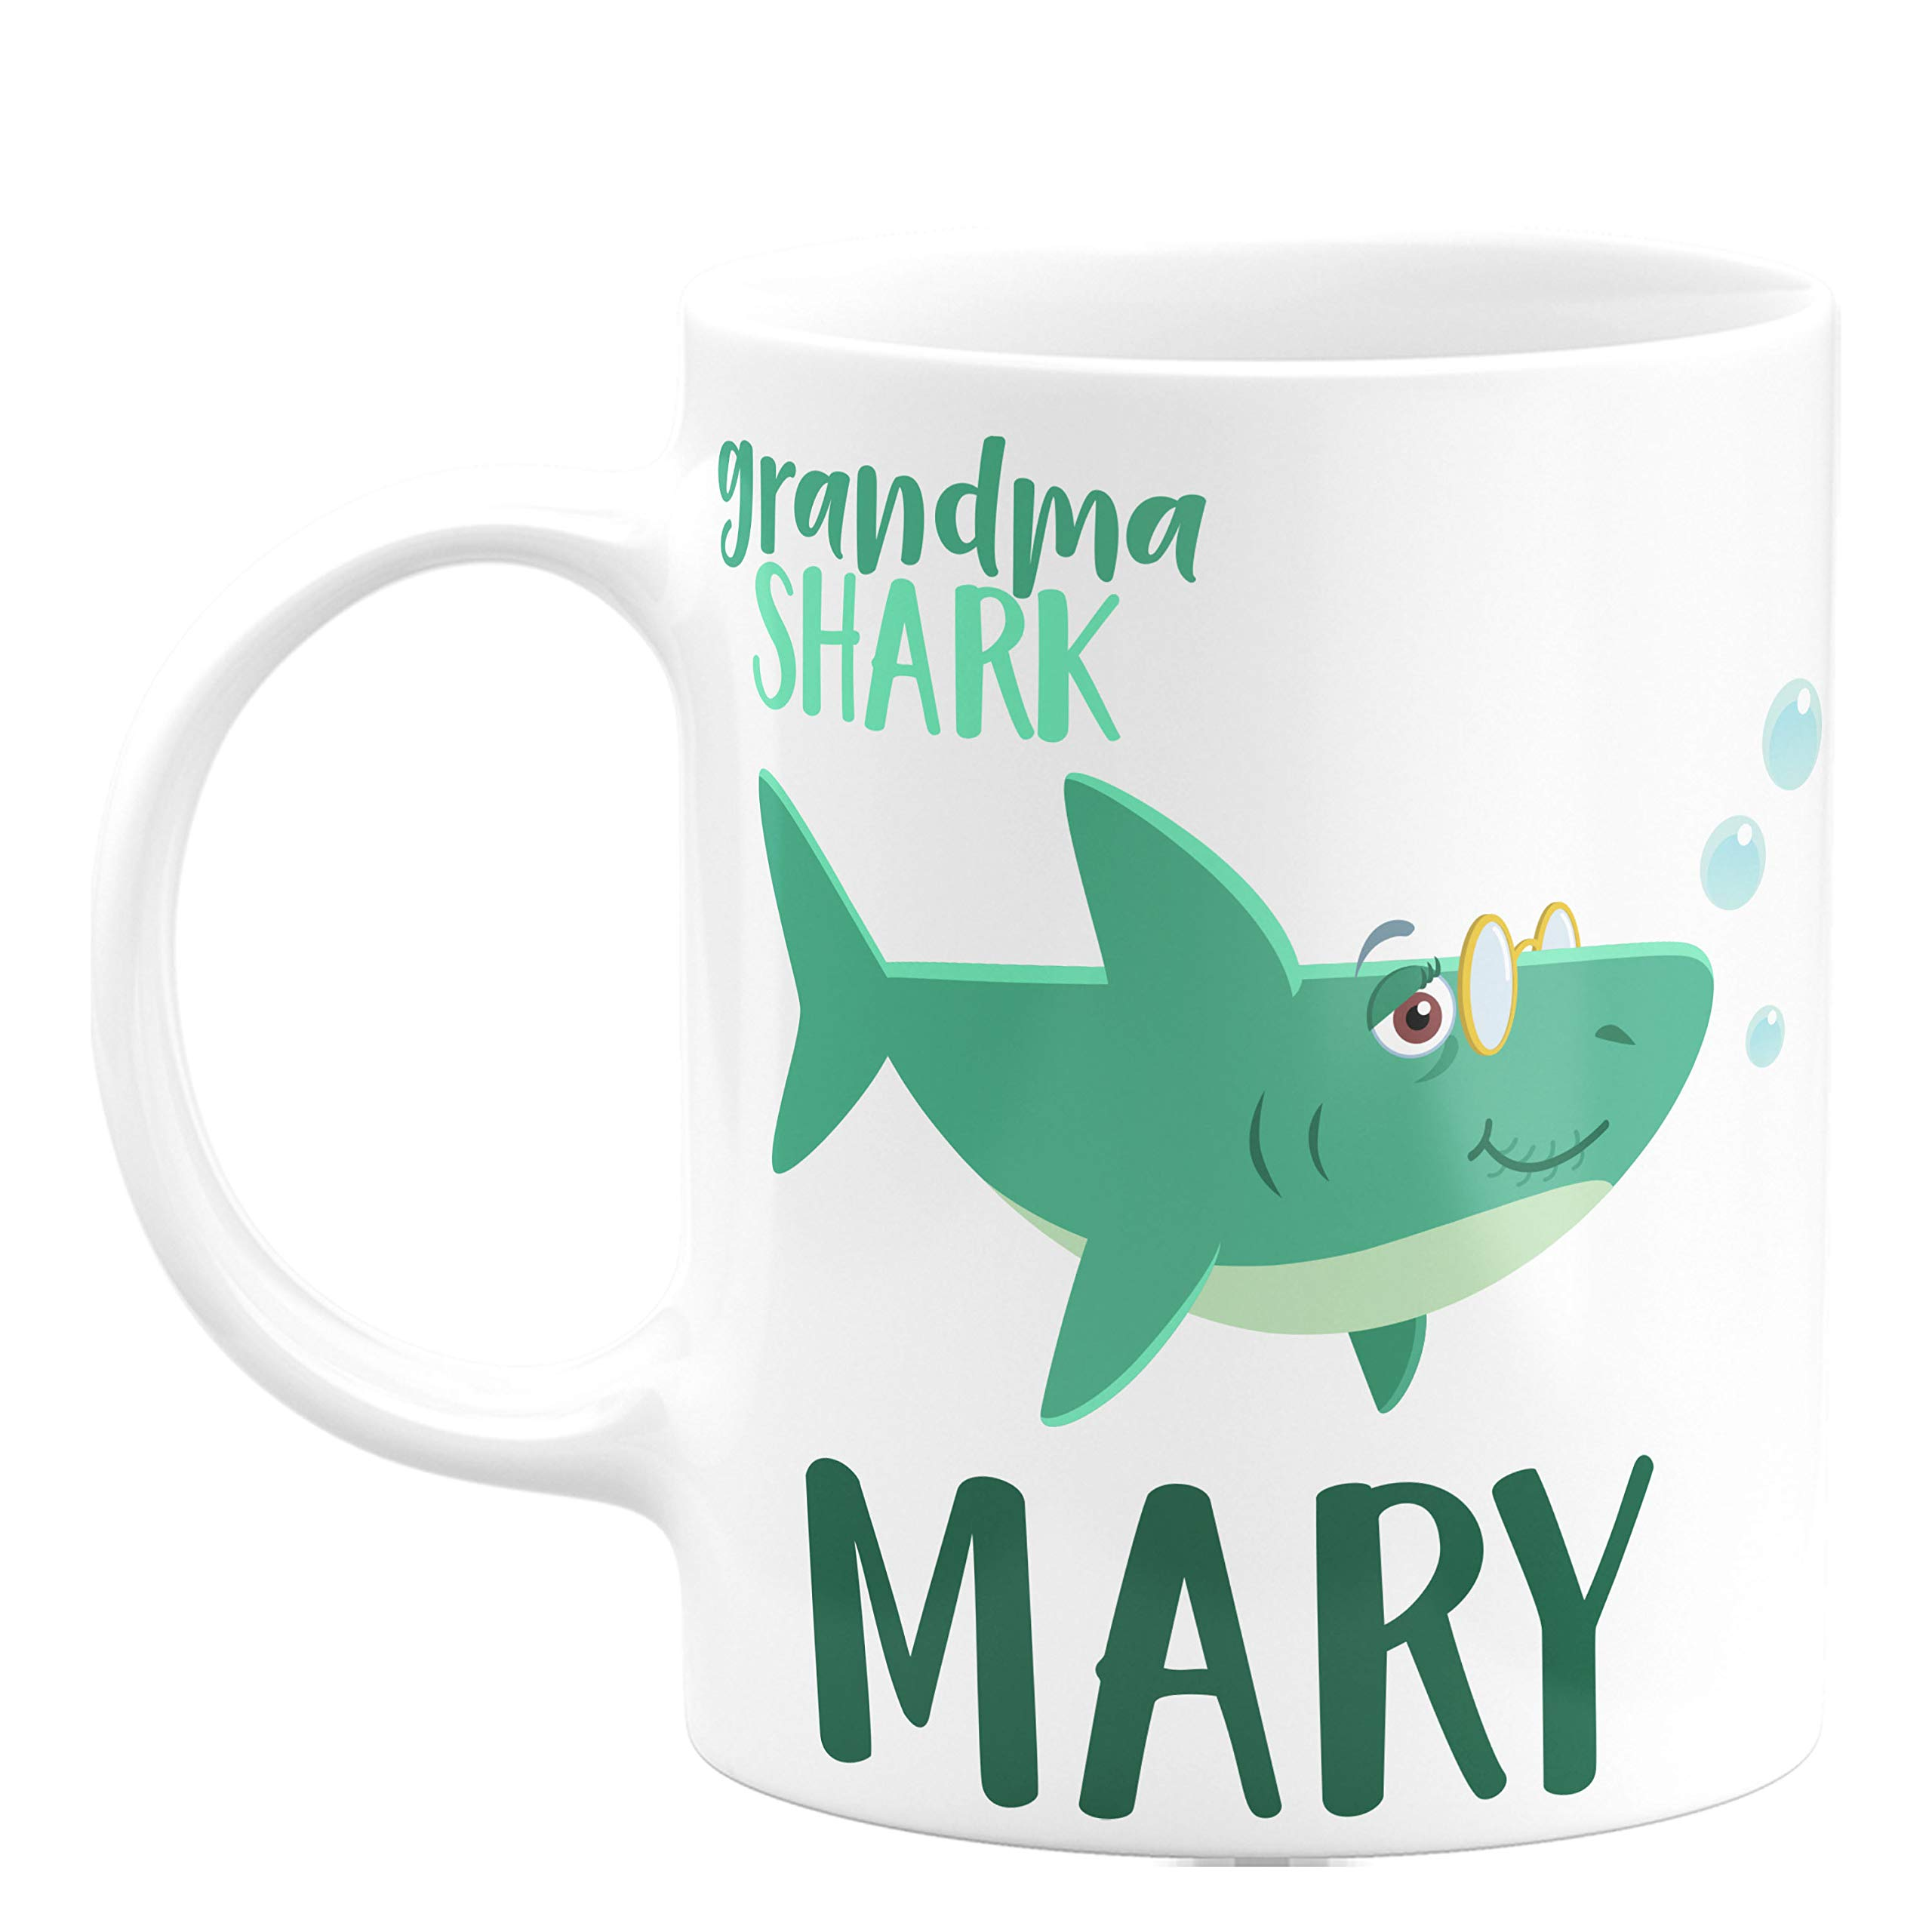 Personalized Gifts Shark Family Coffee Mug - 11oz & 15oz Ceramic Coffee Mug -Birthday Gifts, Christmas Gifts, Mother's Day Gifts - Baby, Boy, Girl, Mommy, Daddy, Grandma, Grandpa Sharks